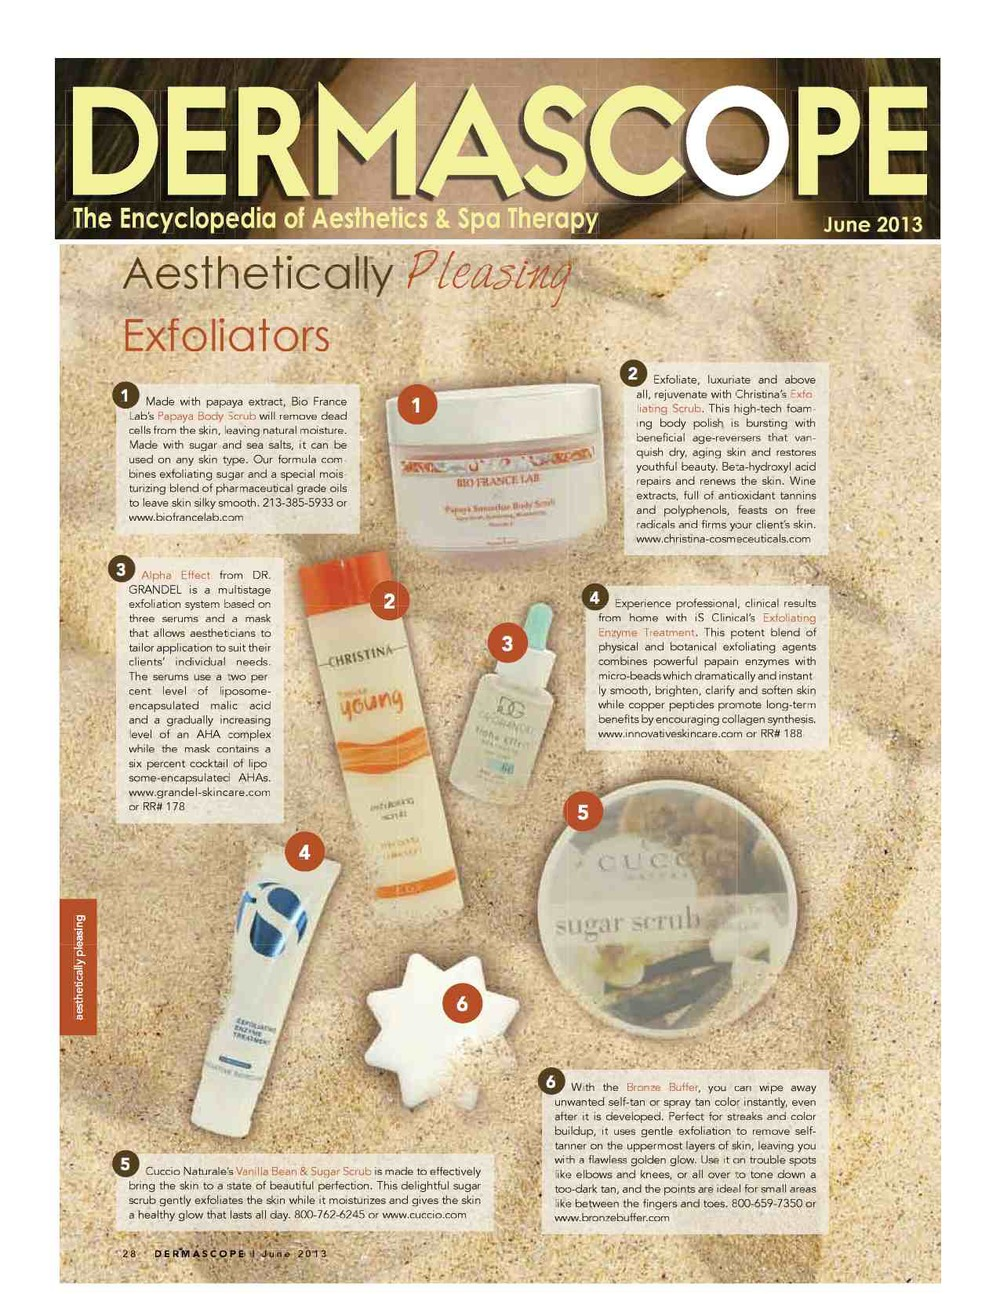 Dermascope June 2013